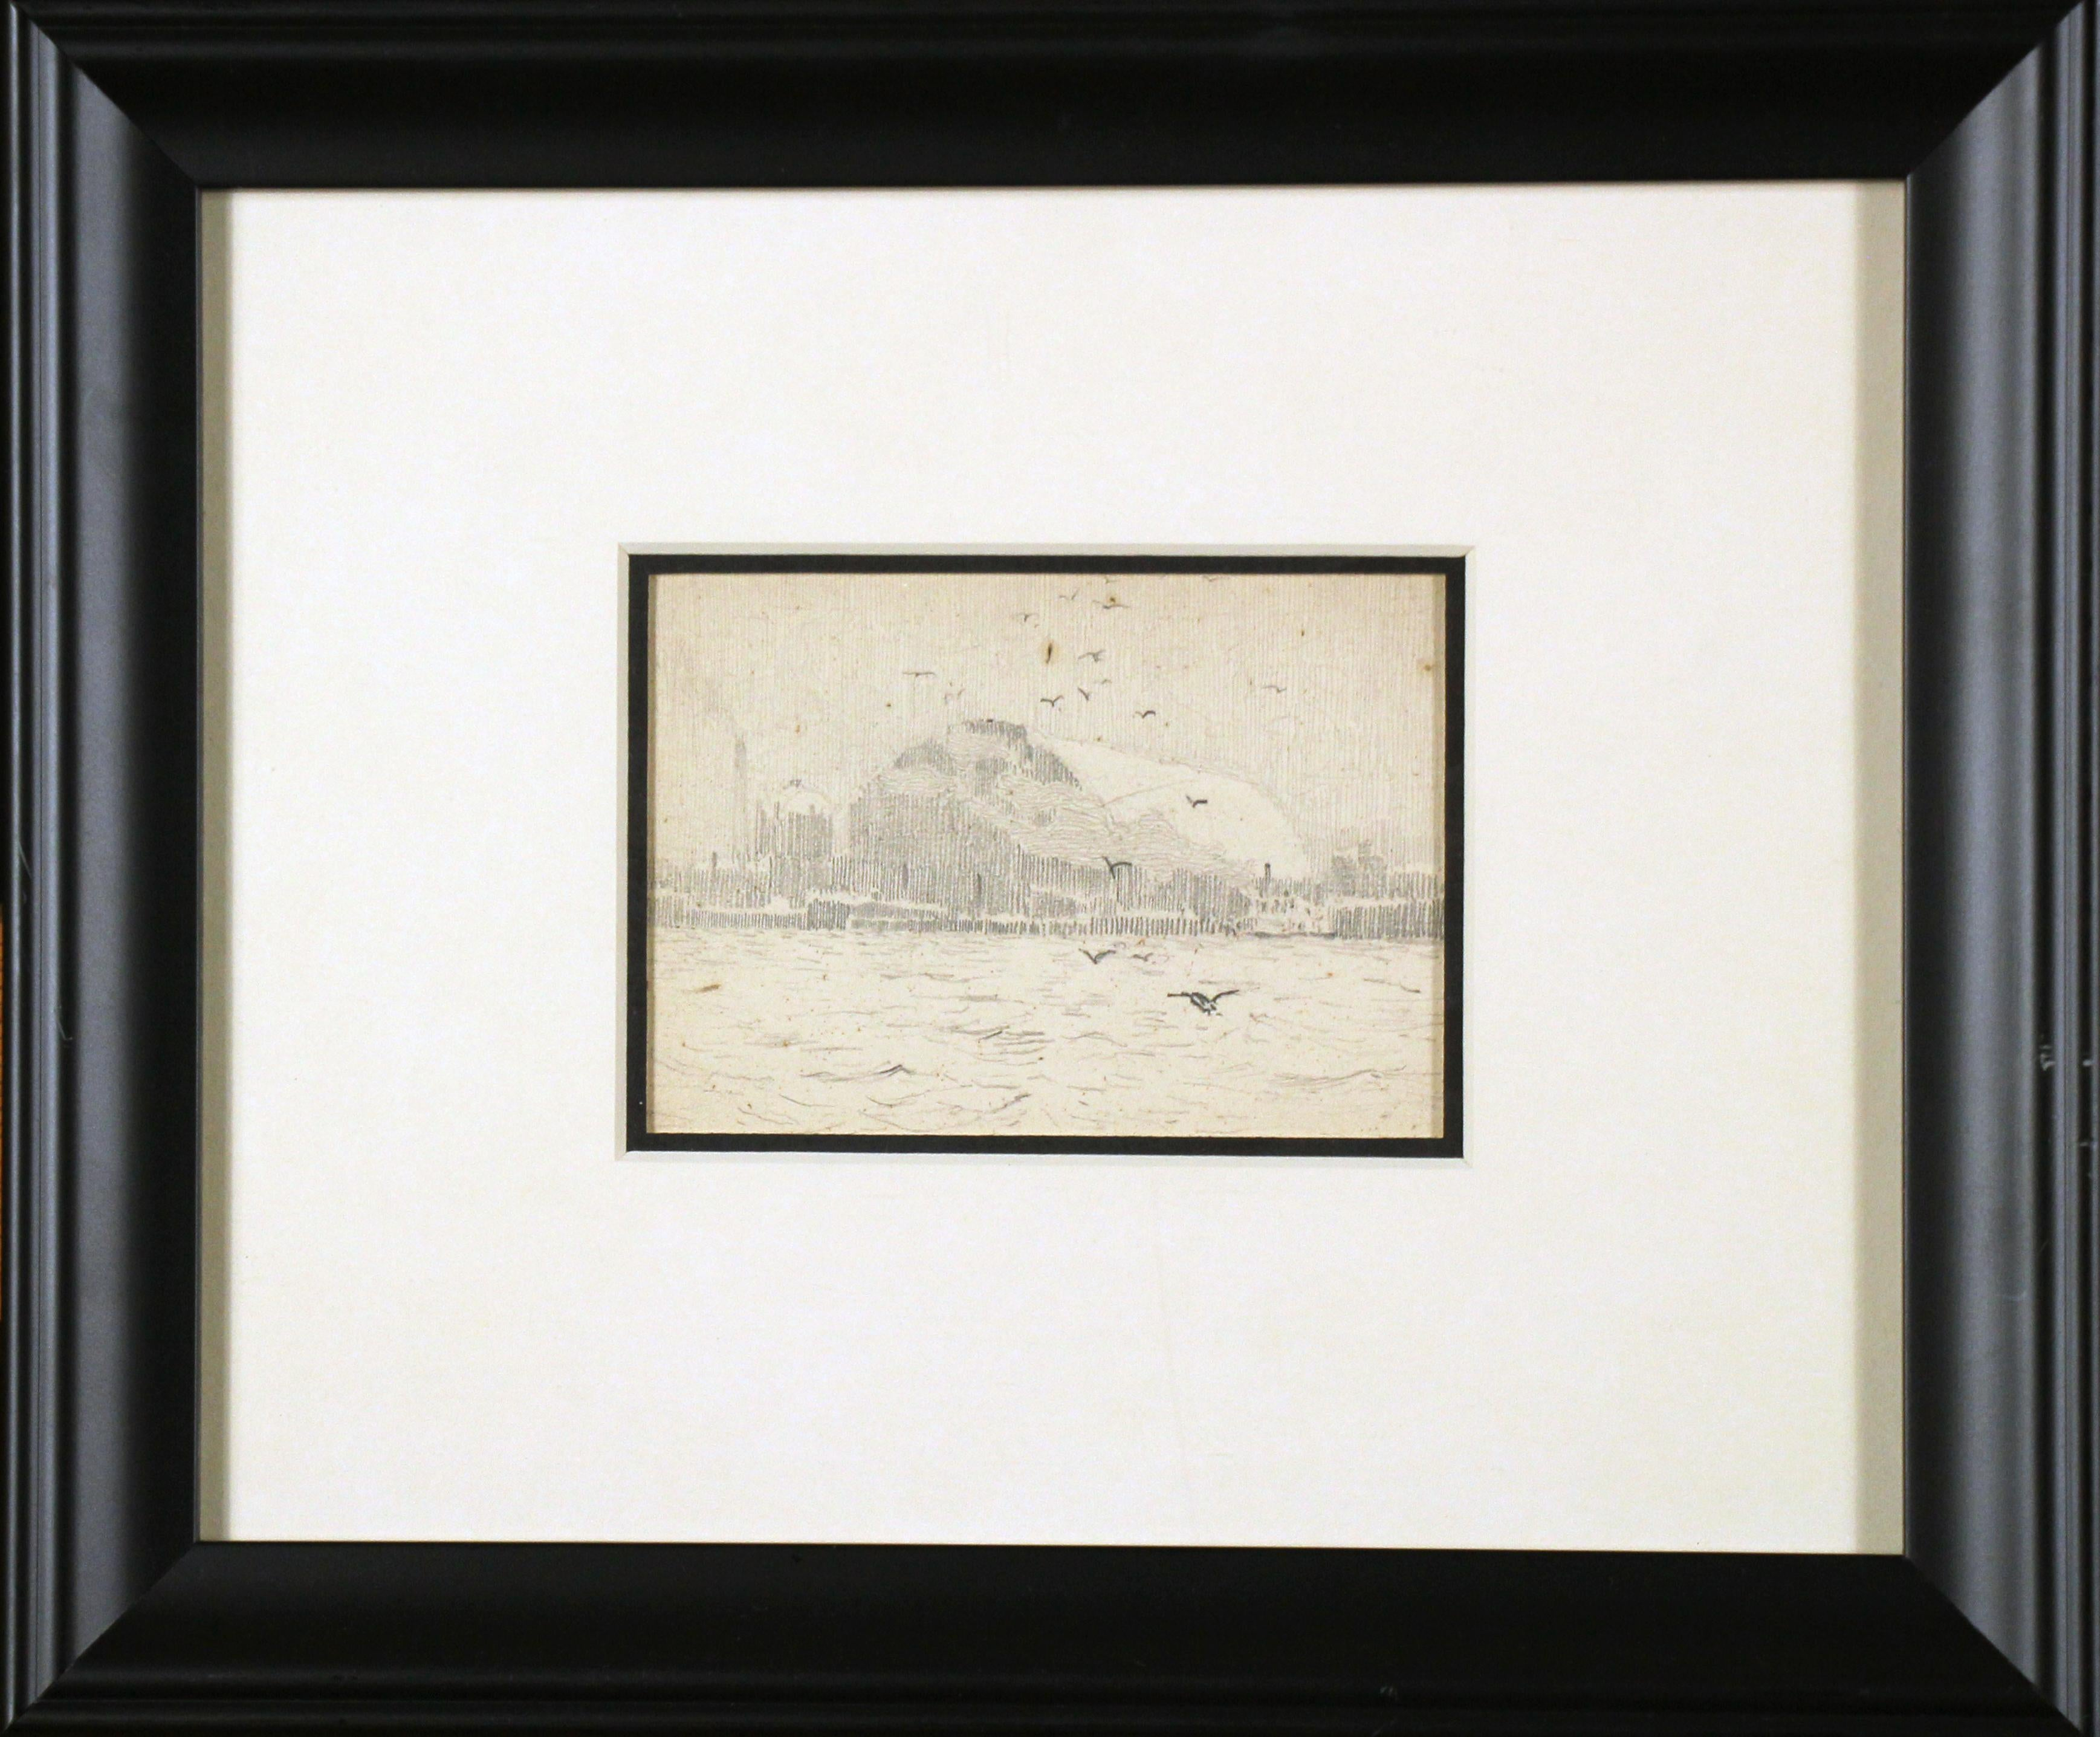 Boatyard with Seagulls, American Impressionist, Pencil Drawing on Paper, 1899